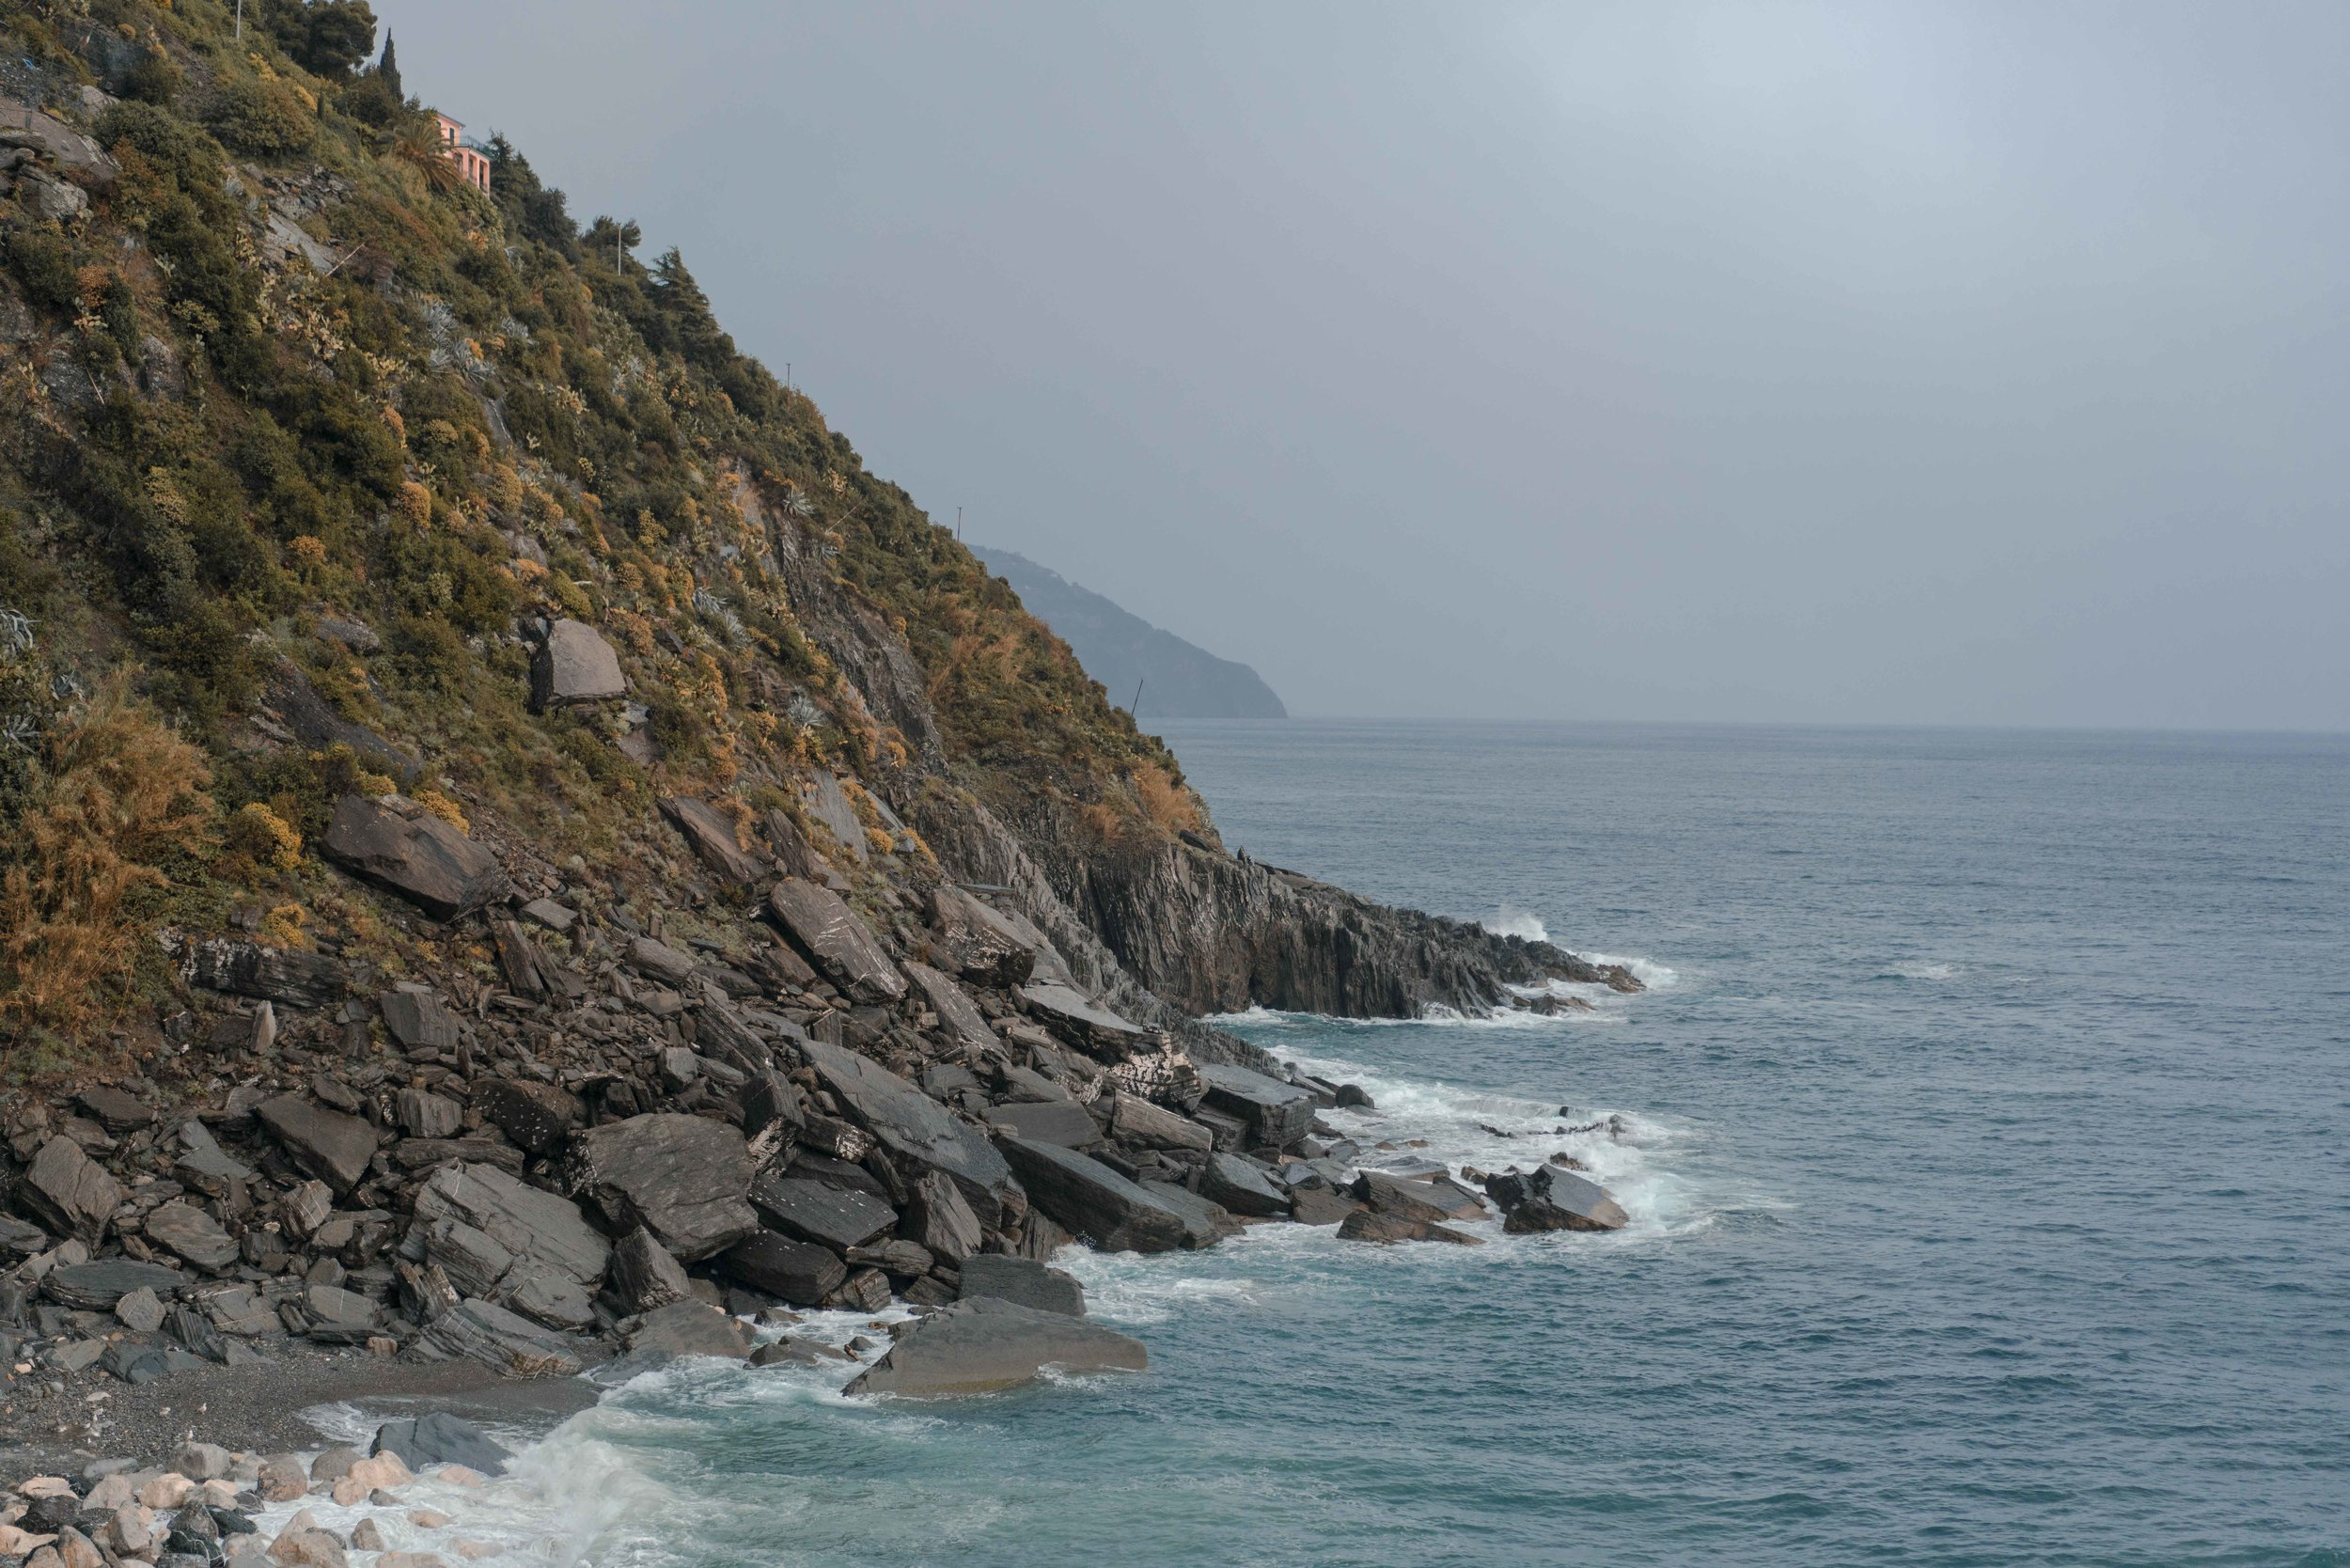 Holiday in Italy - Day 7 Cinque Terre Vernazza - Sony A7R2 -- 66.jpg